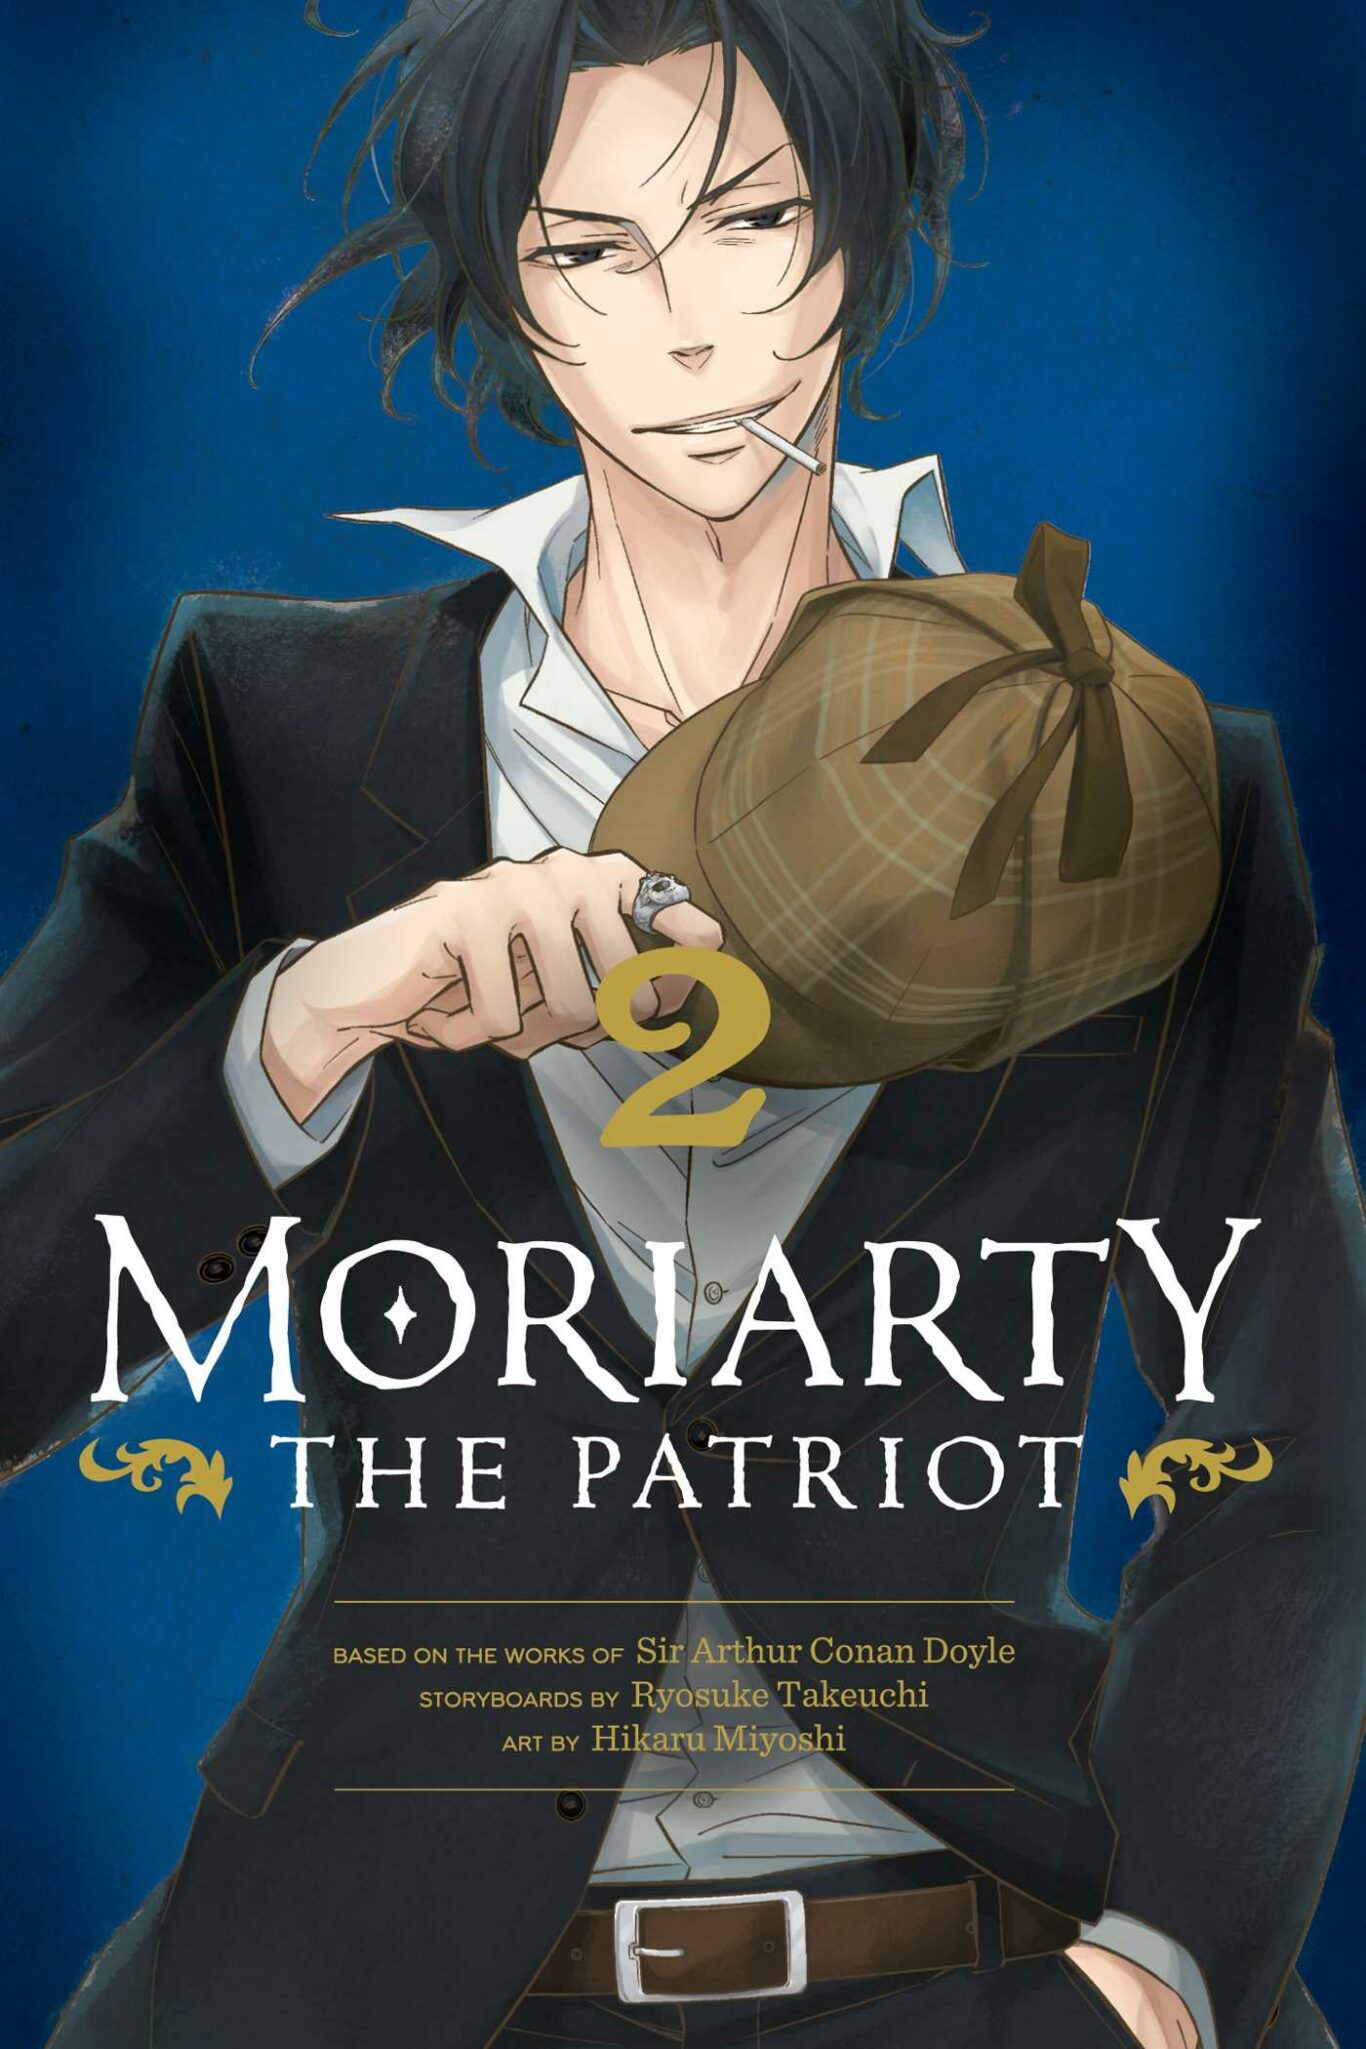 Moriarty the Patriot, Volume 2